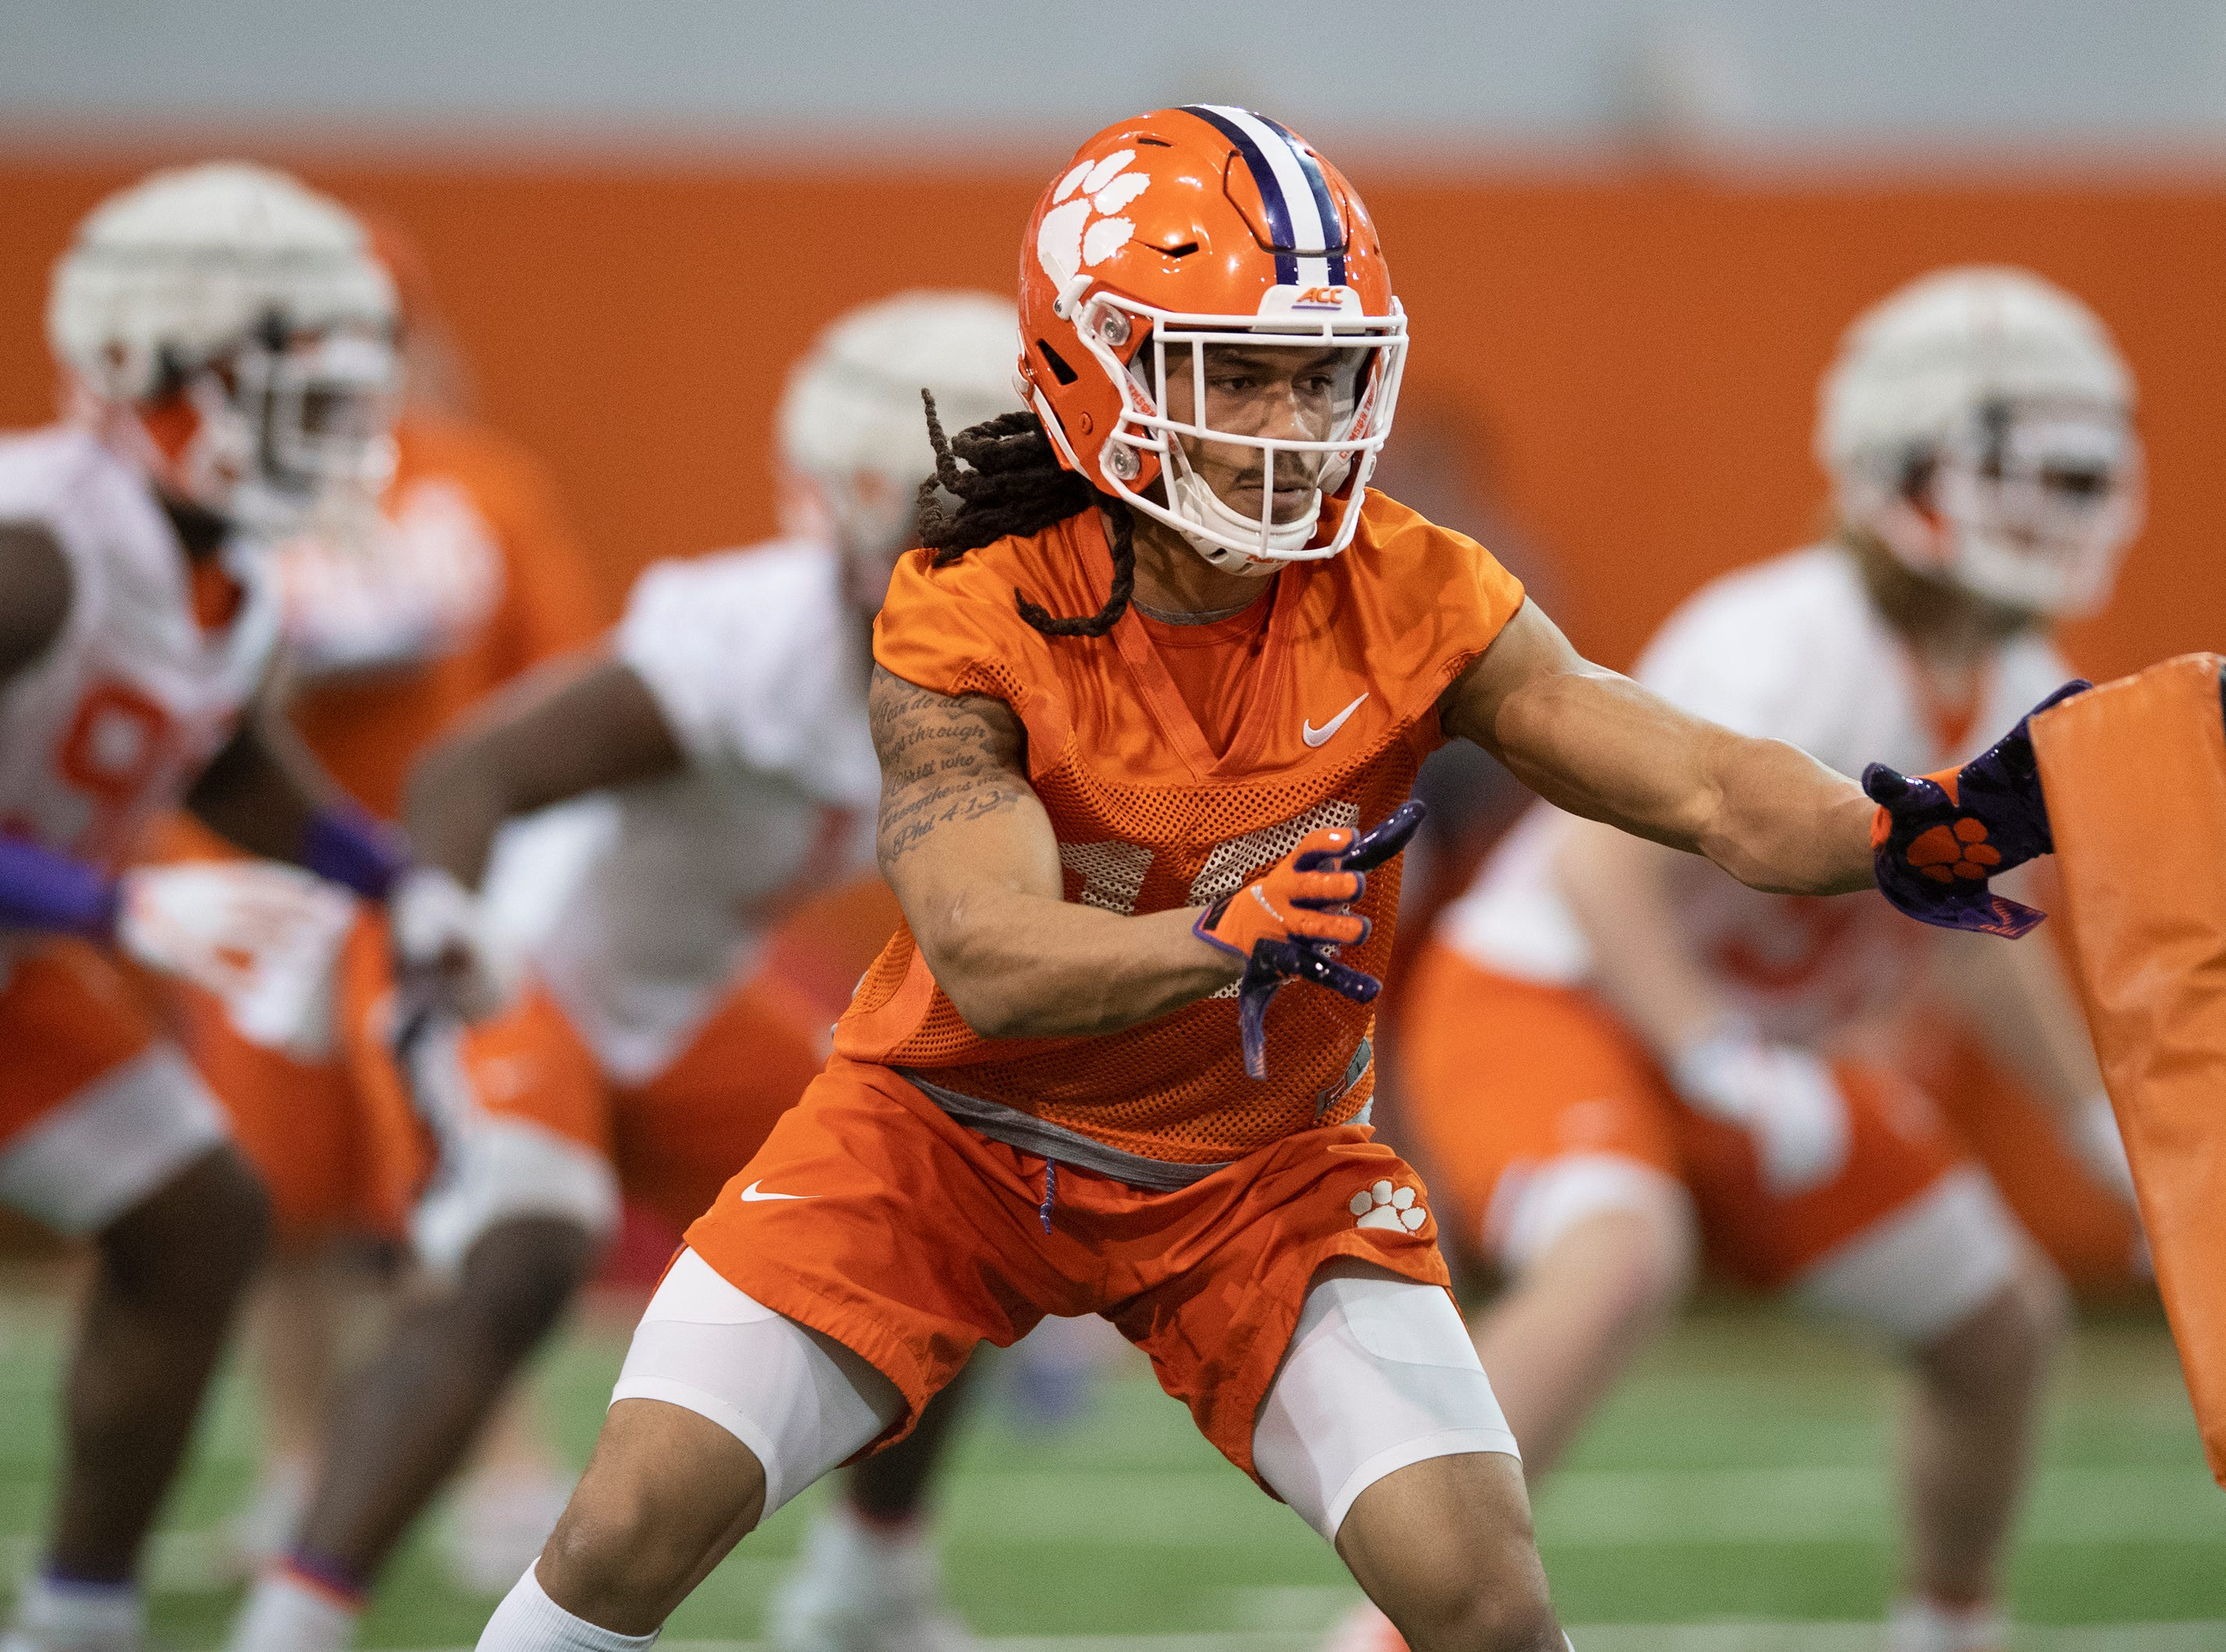 Clemson wide receiver T.J. Chase (18) goes through drills during football practice at the Poe Indoor Football Facility Friday, Mar. 1, 2019.